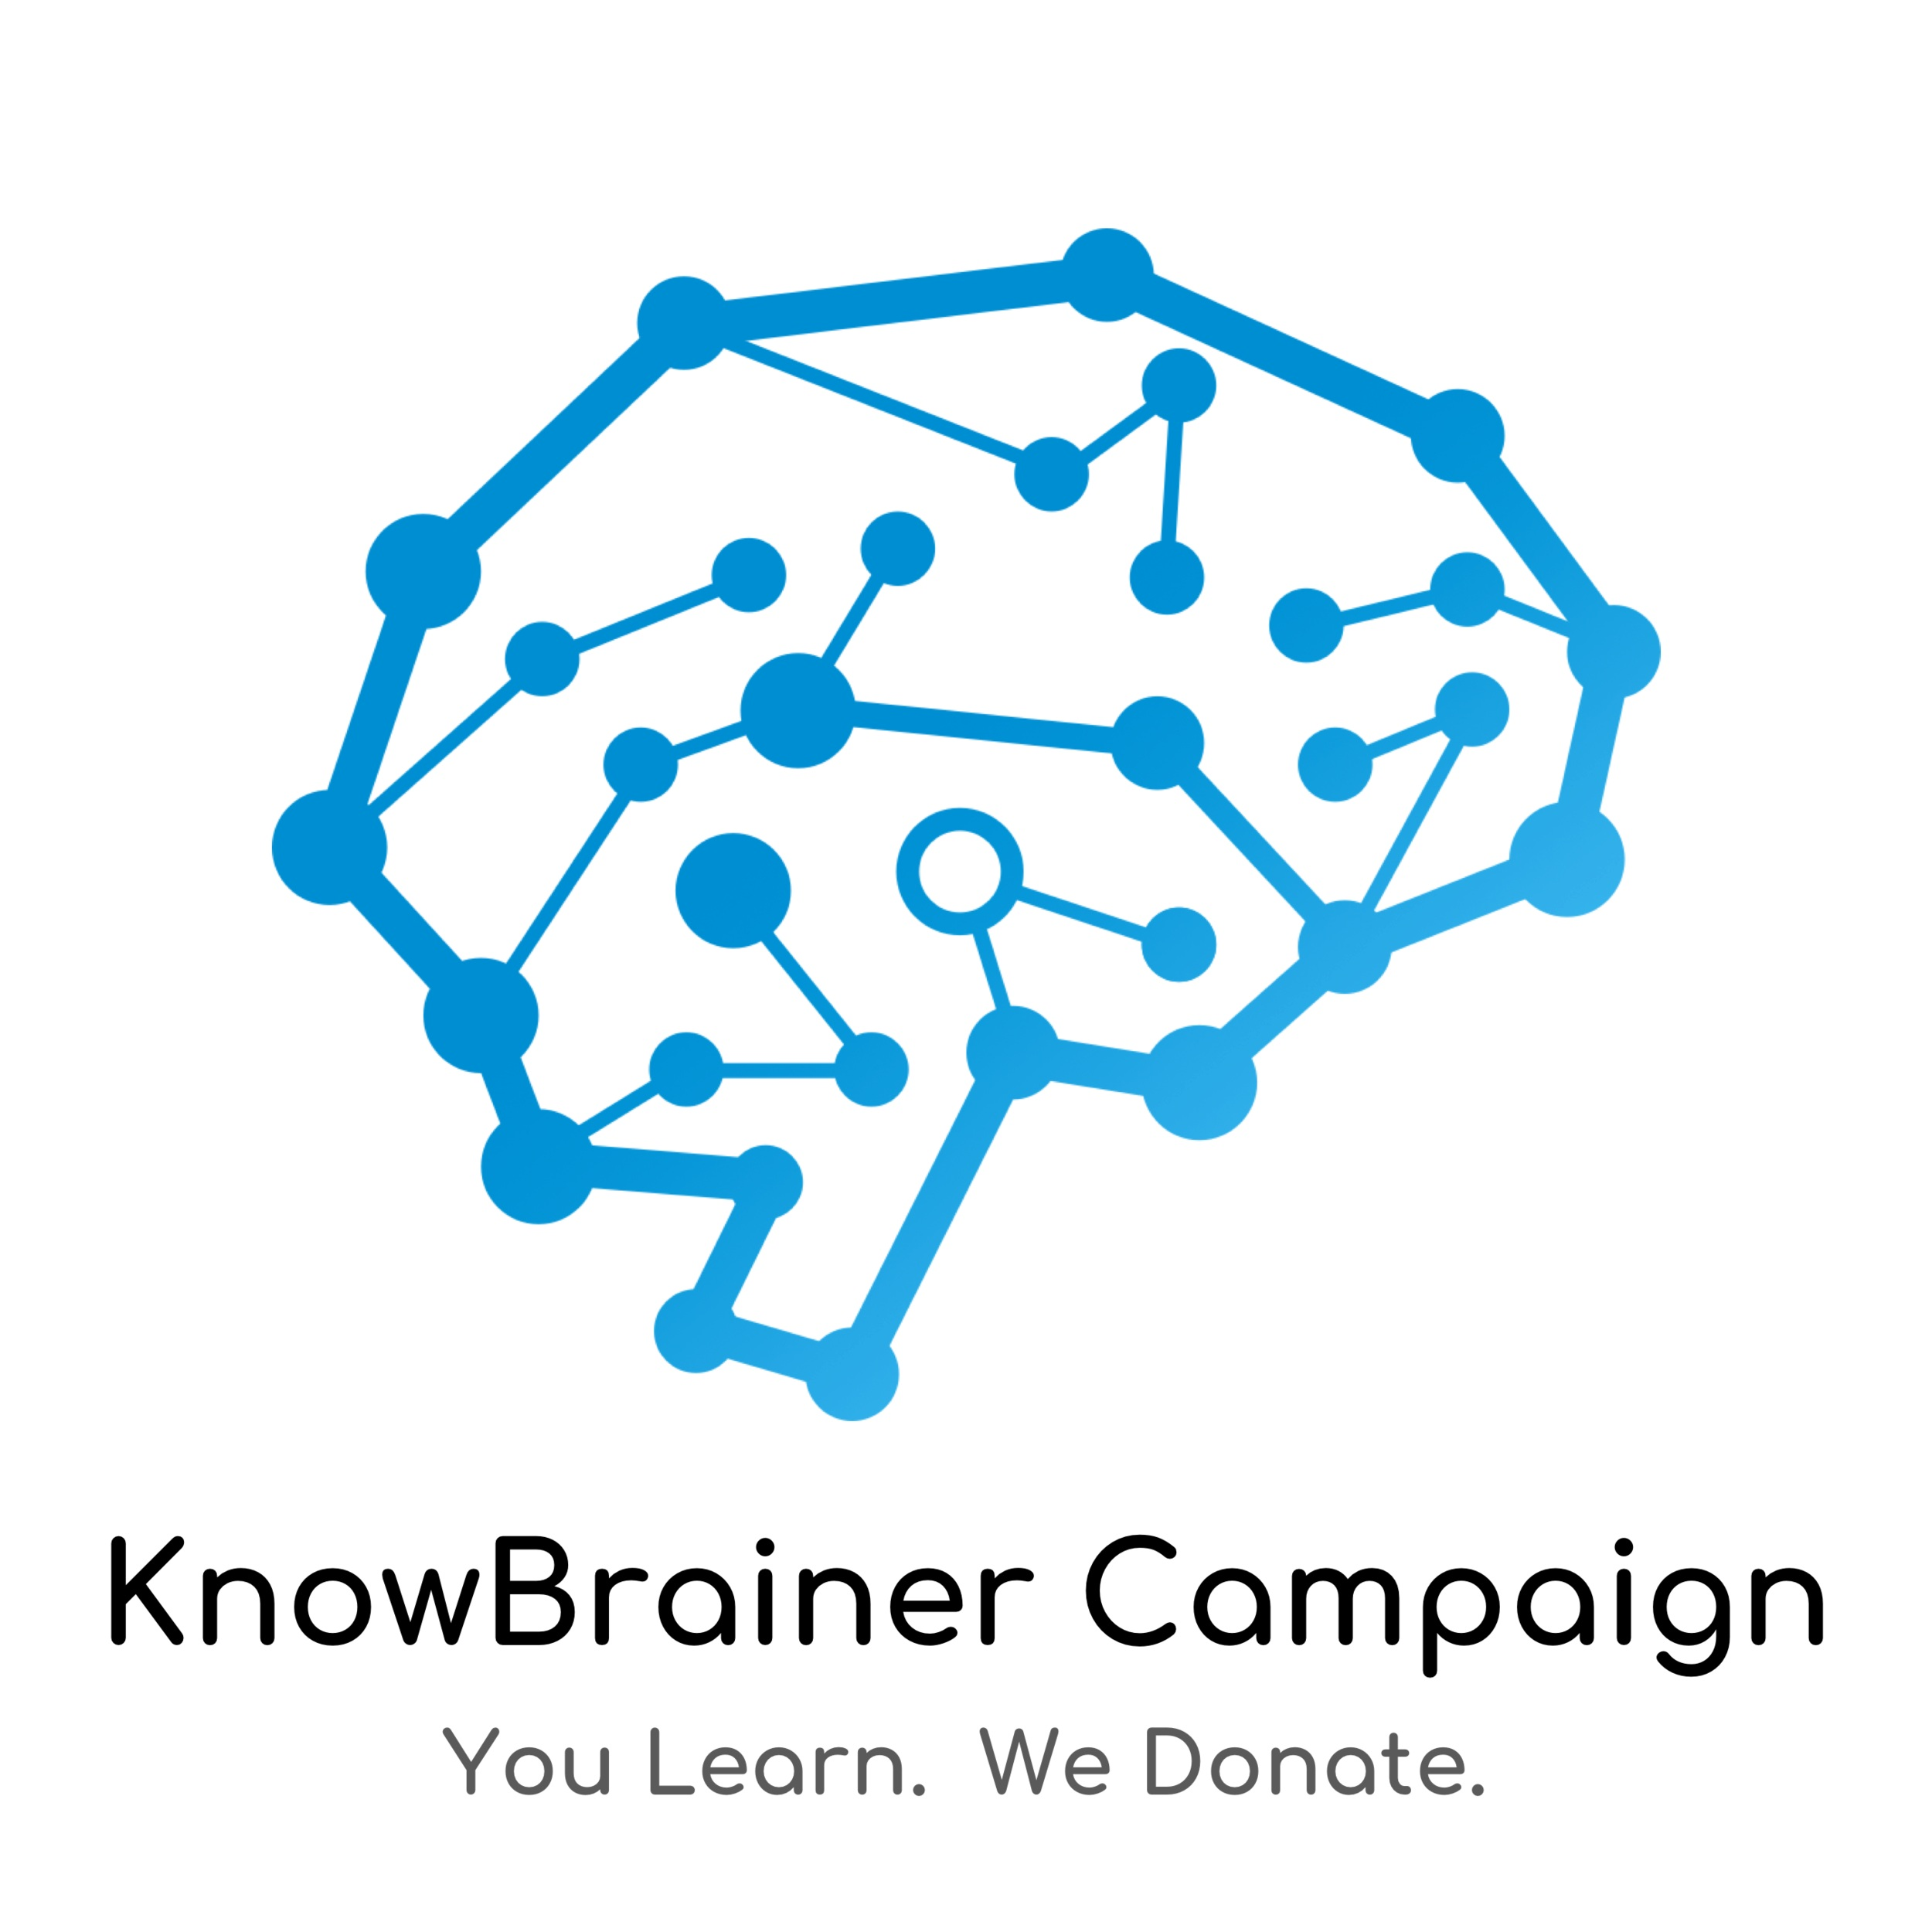 knowbrainer-campaign-logo-stacked.jpg